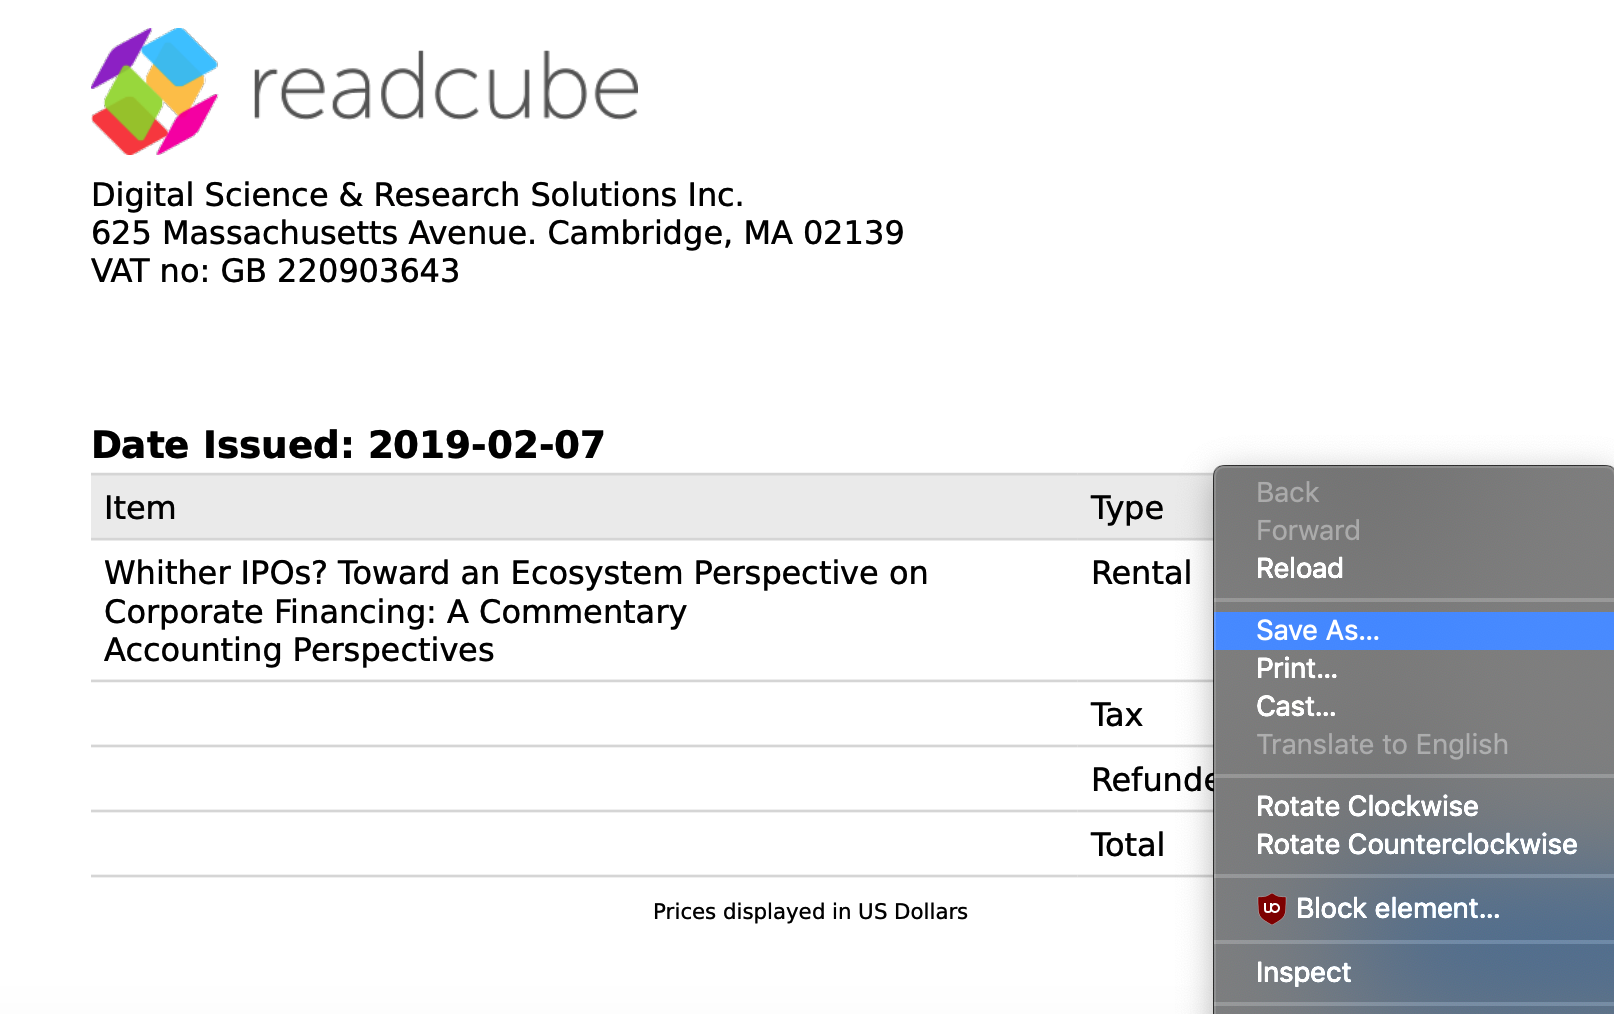 Screenshot how to save invoice from a purchased made through ReadCube Checkout